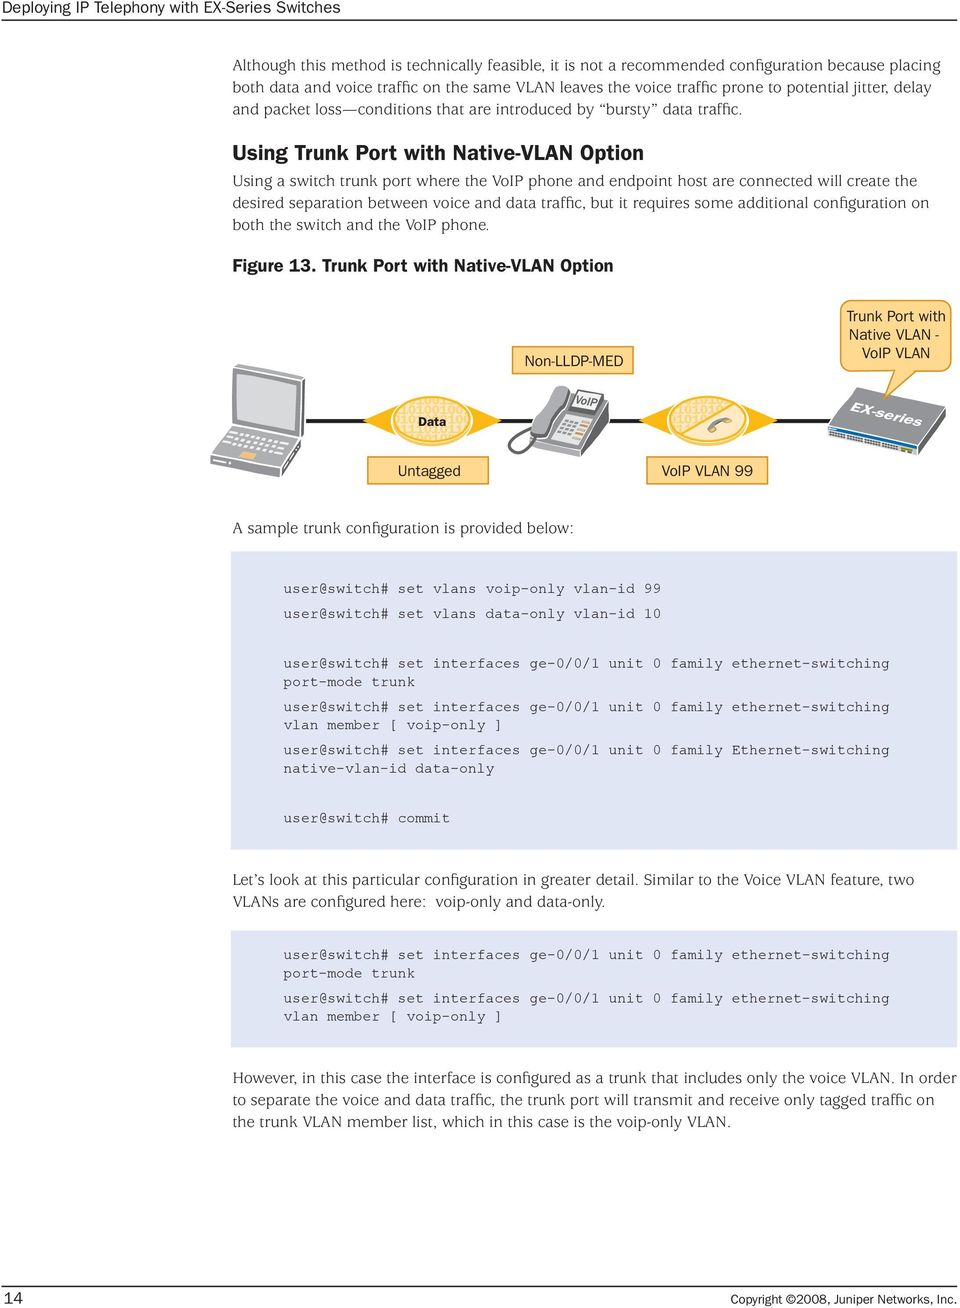 Using Trunk Port with Native-VLAN Option Using a switch trunk port where the VoIP phone and endpoint host are connected will create the desired separation between voice and data traffic, but it